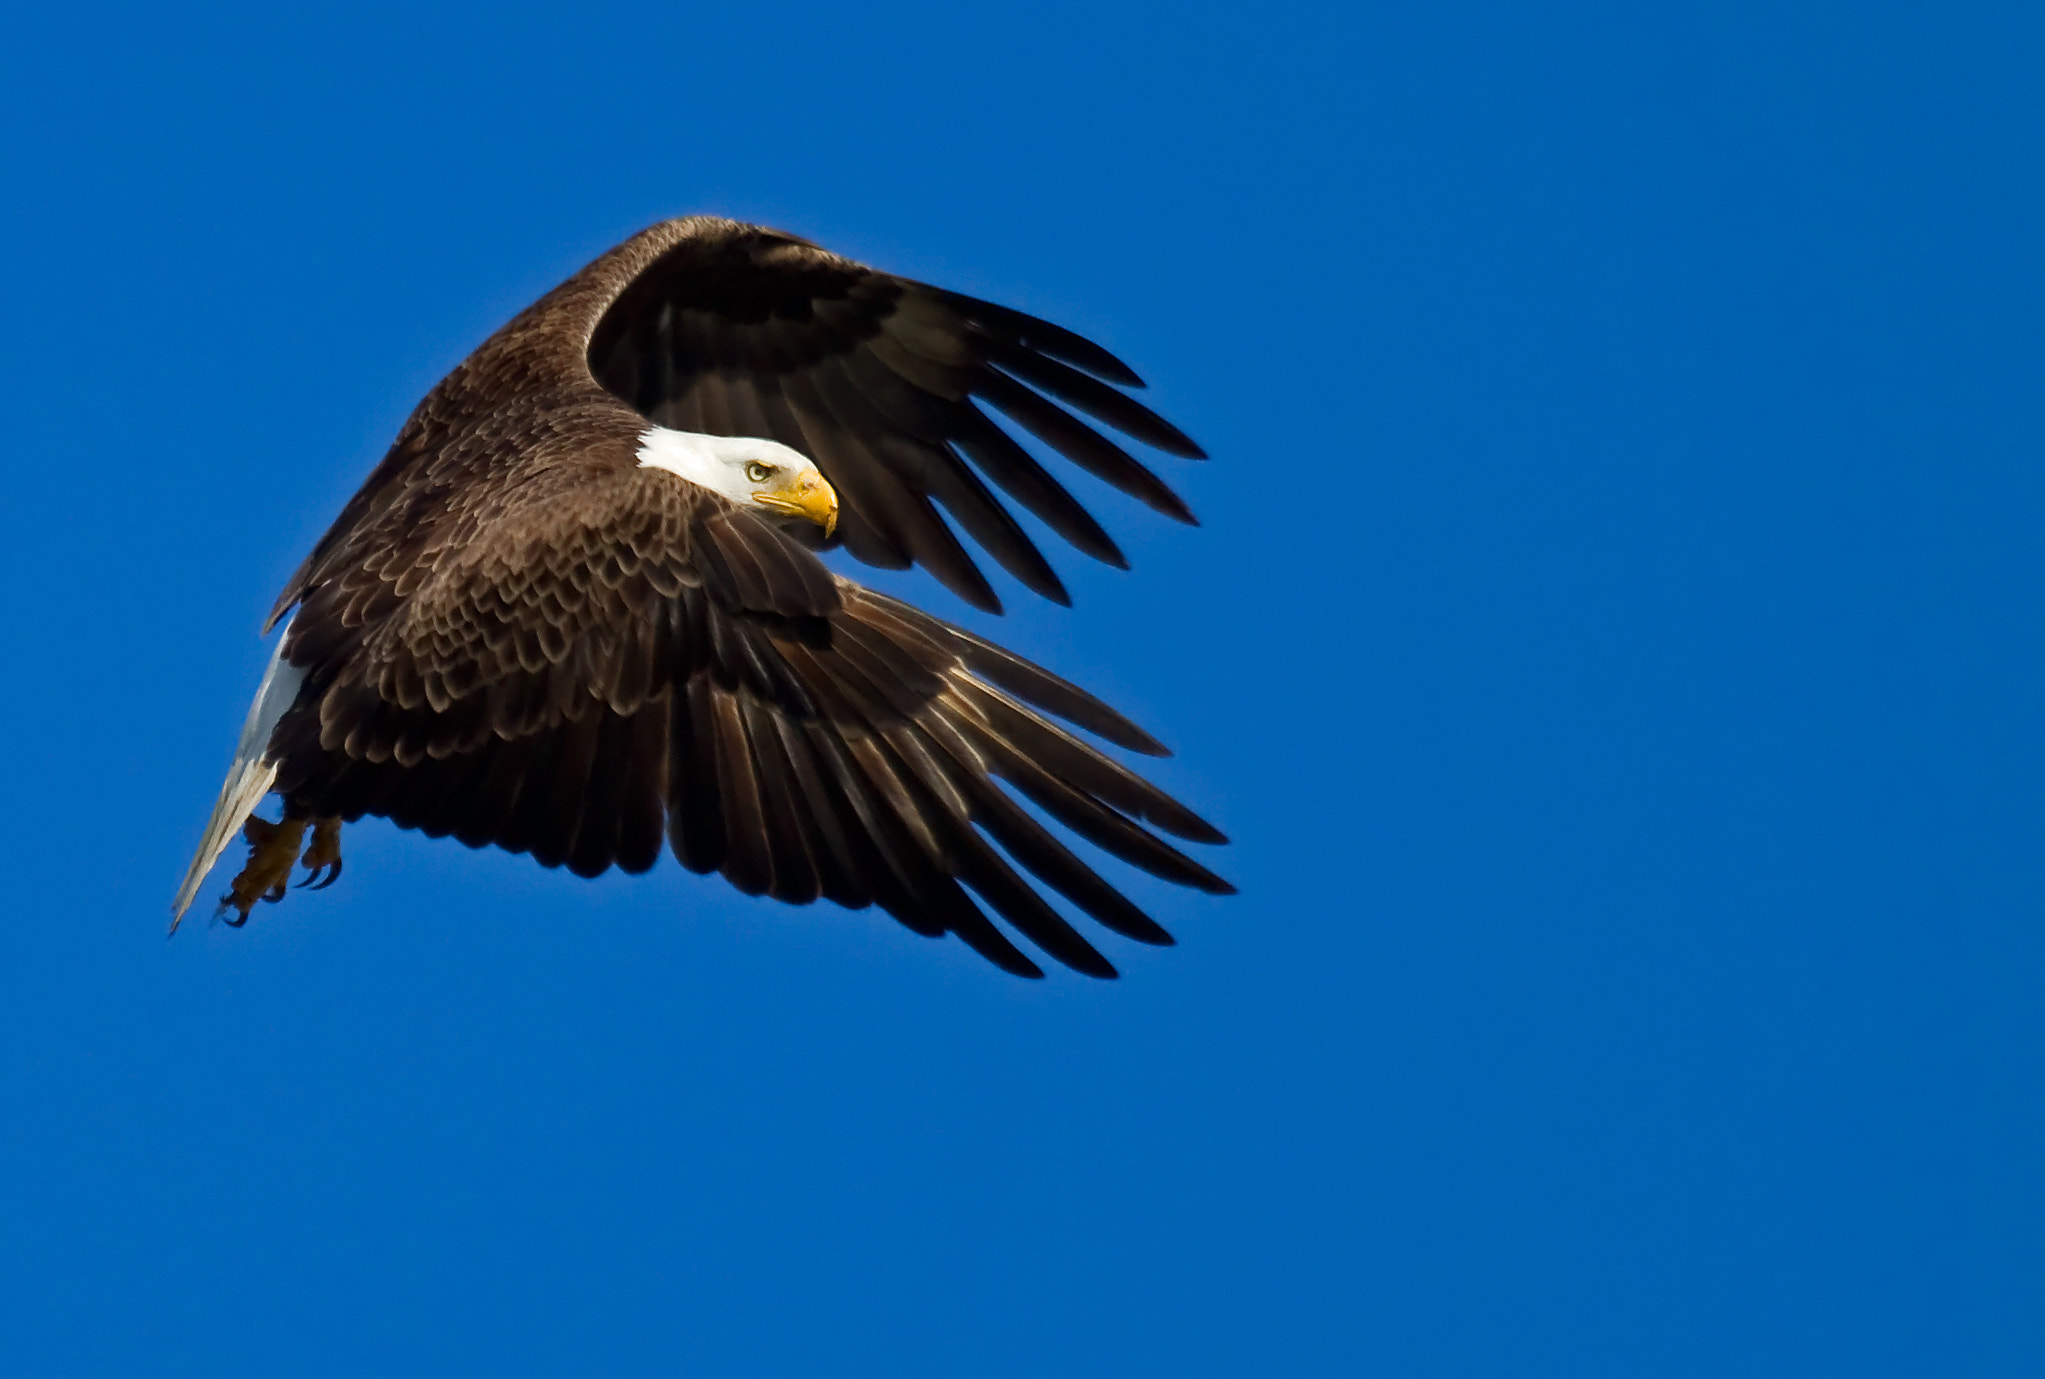 Photograph Powerful Wings by Lorraine Hudgins on 500px